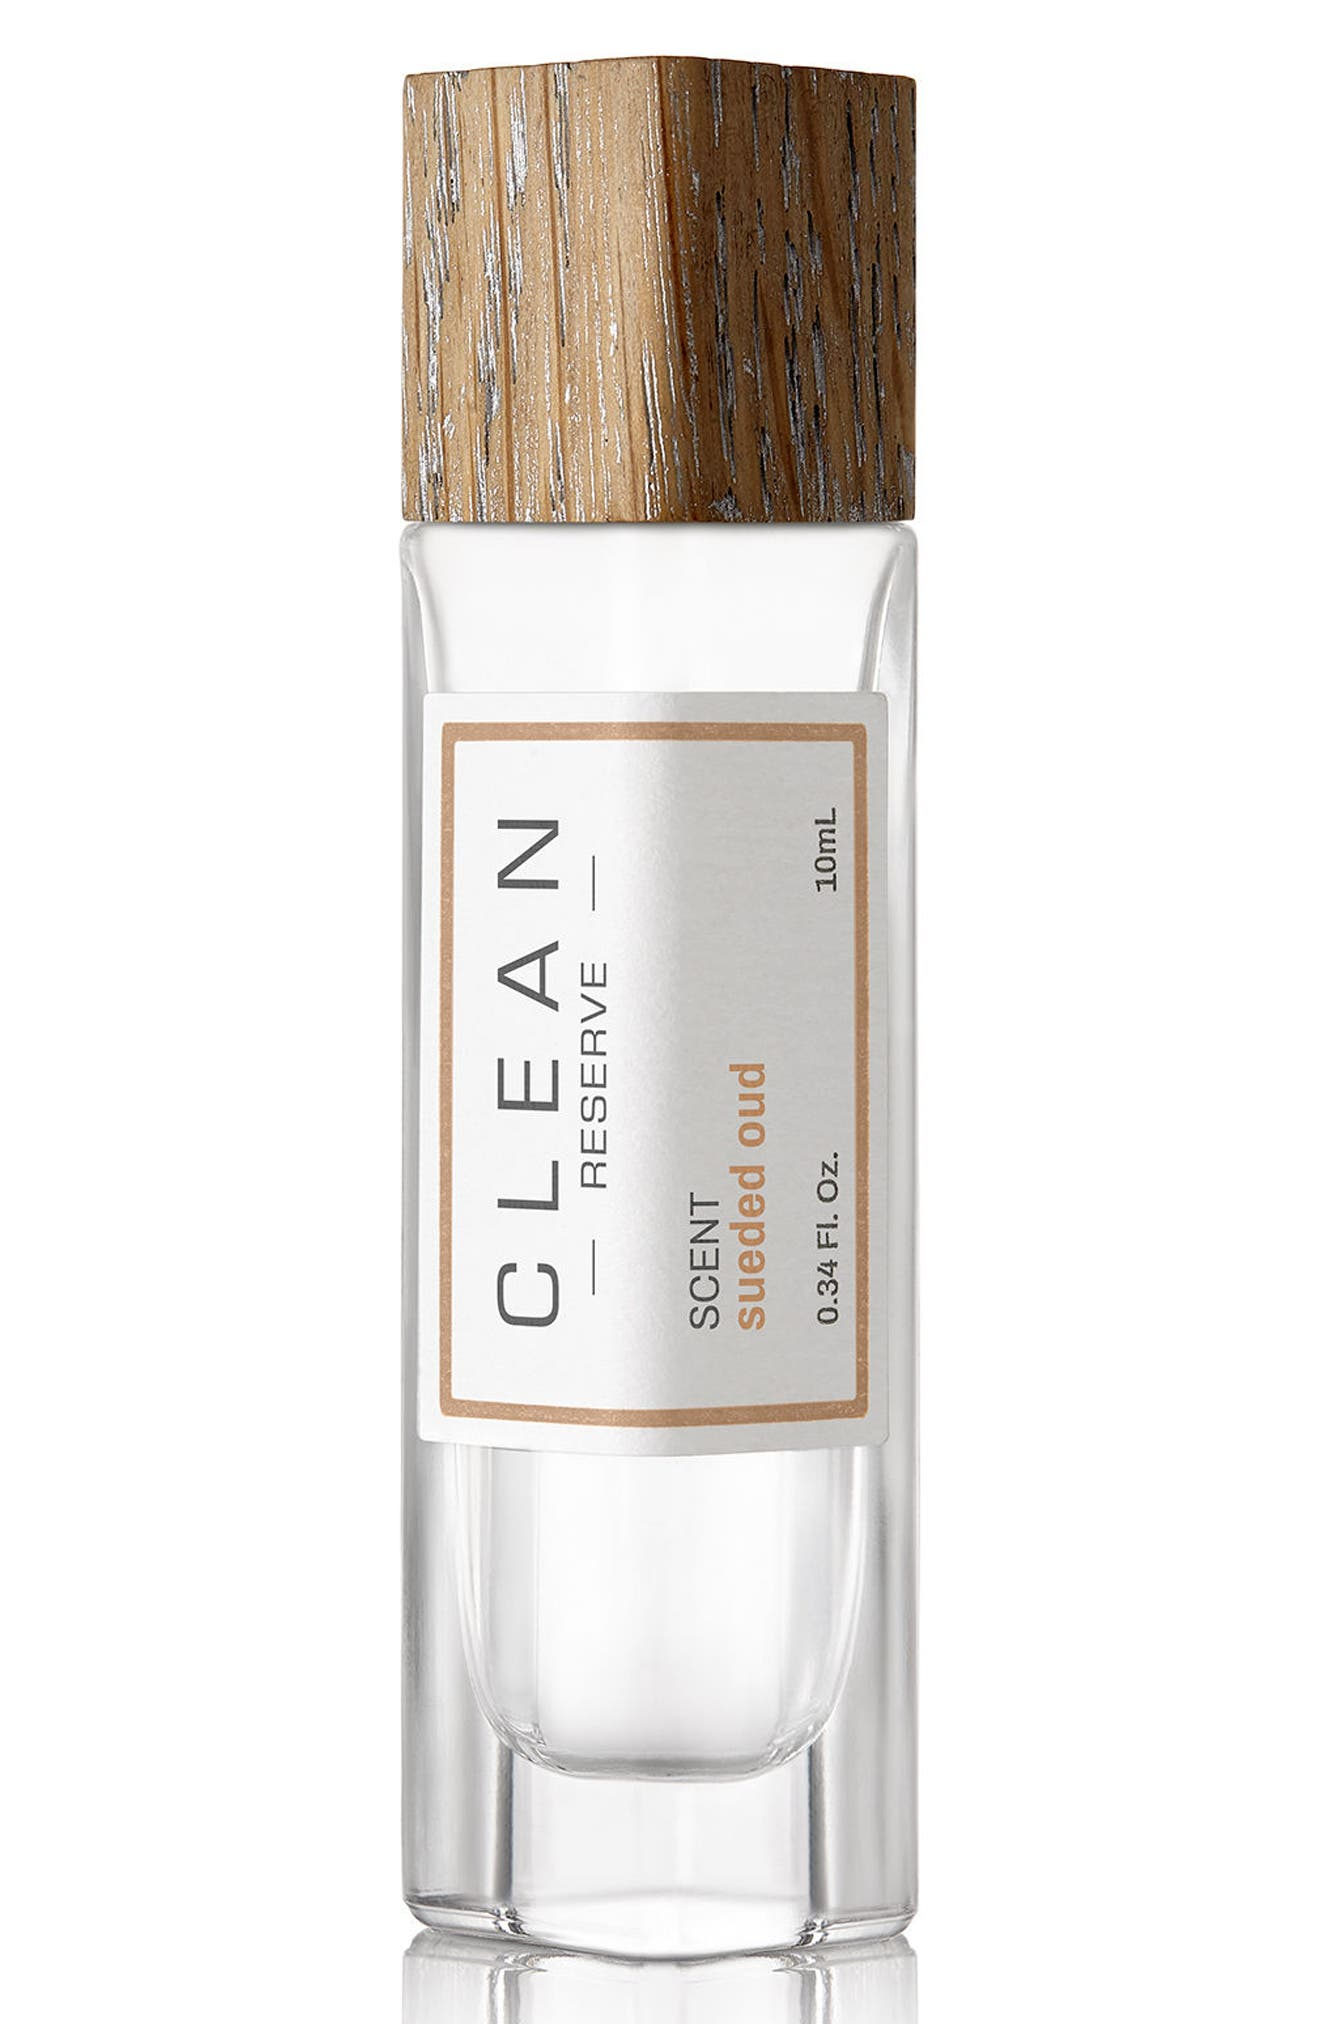 Clean Reserve Sueded Oud Eau de Parfum Pen Spray